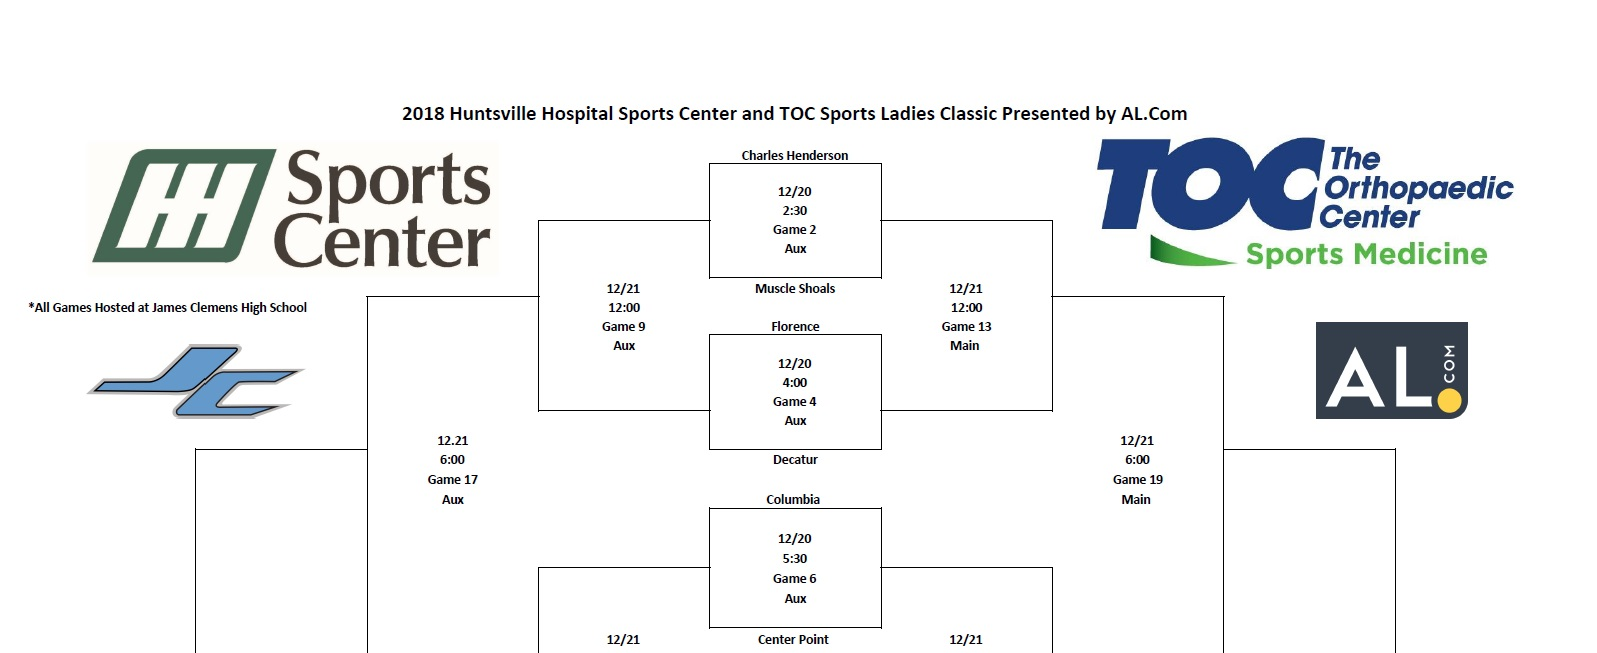 2018 Huntsville Hospital Sports Center and TOC Sports Ladies Classic